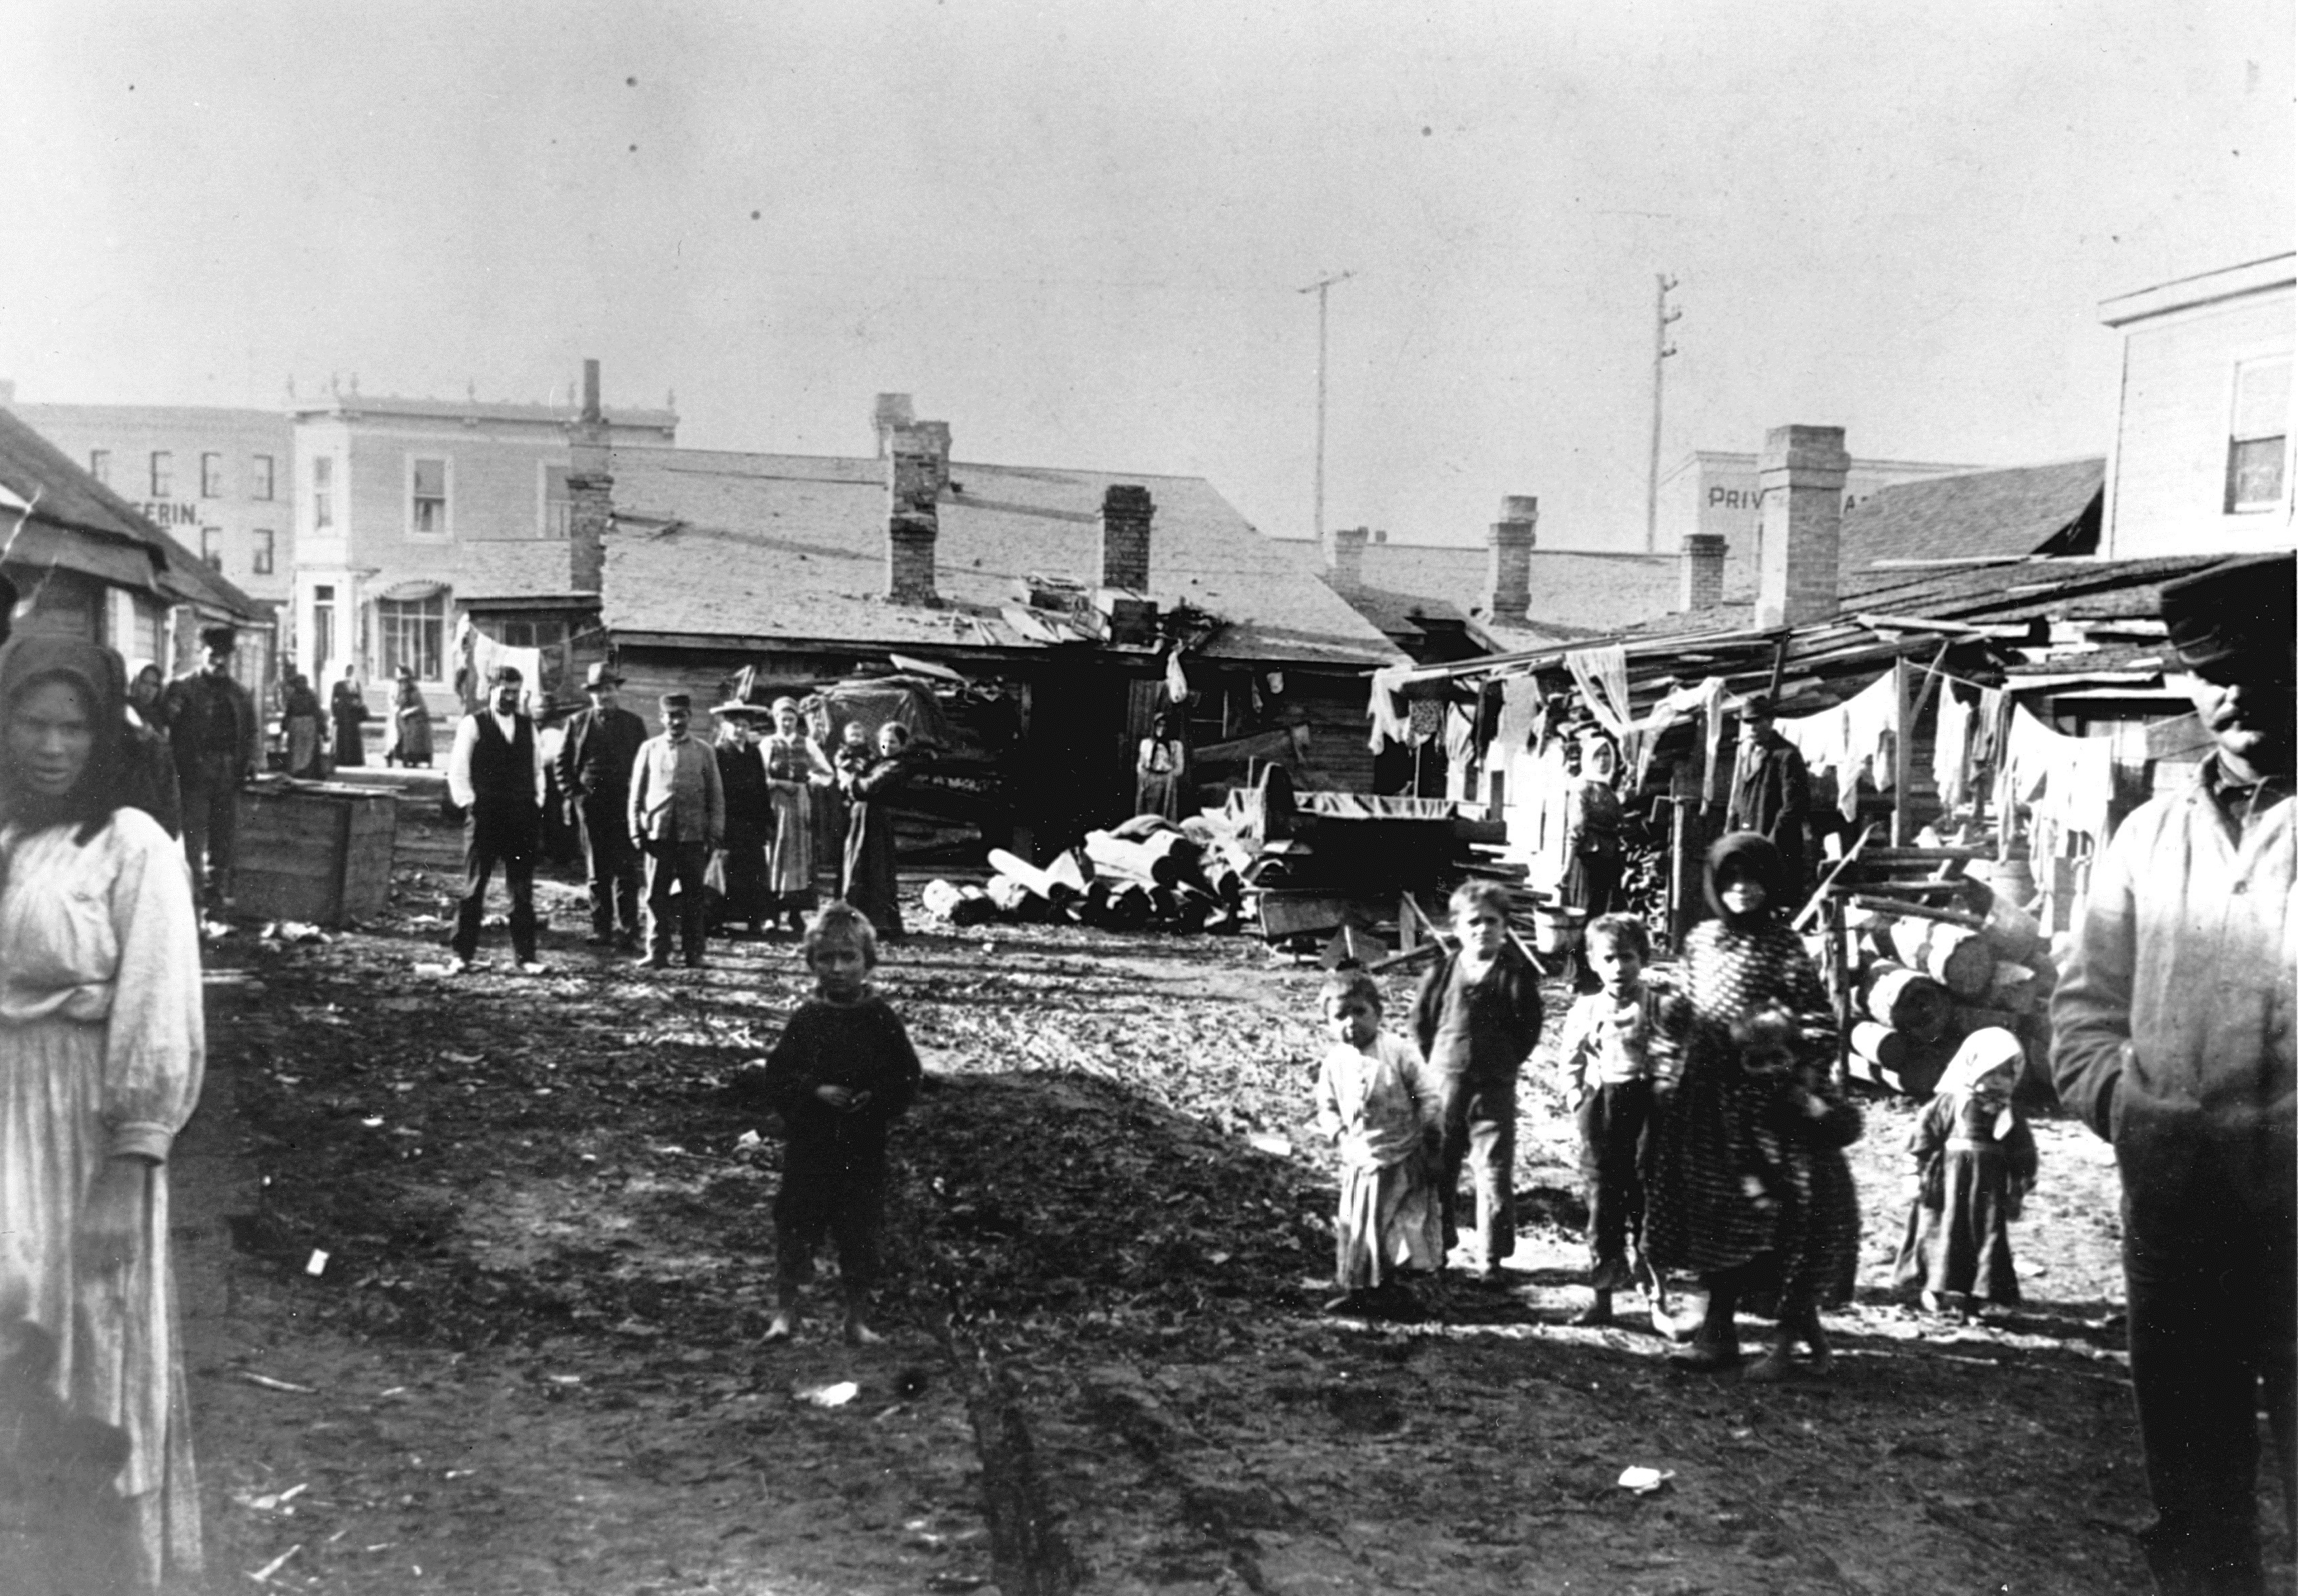 Poorly built shacks line the mud roads of 'New Jerusalem' at the corner of King Street and Dufferin Avenue in 1904. (Archives of Manitoba)